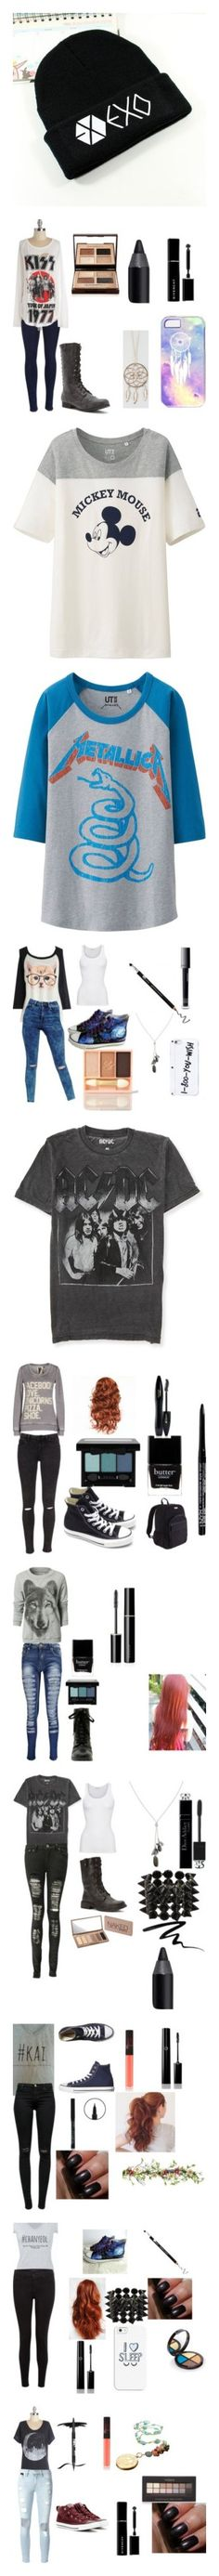 back to school by alicia-westmoreland on Polyvore featuring polyvore, fashion, accessories, hats, beanies, clothing, exo, beanie hats, style, rag & bone, Madden Girl, Charlotte Tilbury, Urban Decay, Givenchy, Full Tilt, tops, t-shirts, shirts, white, cotton t shirts, white cotton shirt, white short sleeve shirt, graphic tees, short sleeve tees, 3/4 length sleeve tops, graphic design t shirts, graphic print t shirts, graphic design tees, logo tee, ASOS, Glo Minerals, HVBAO, Banana Republic…